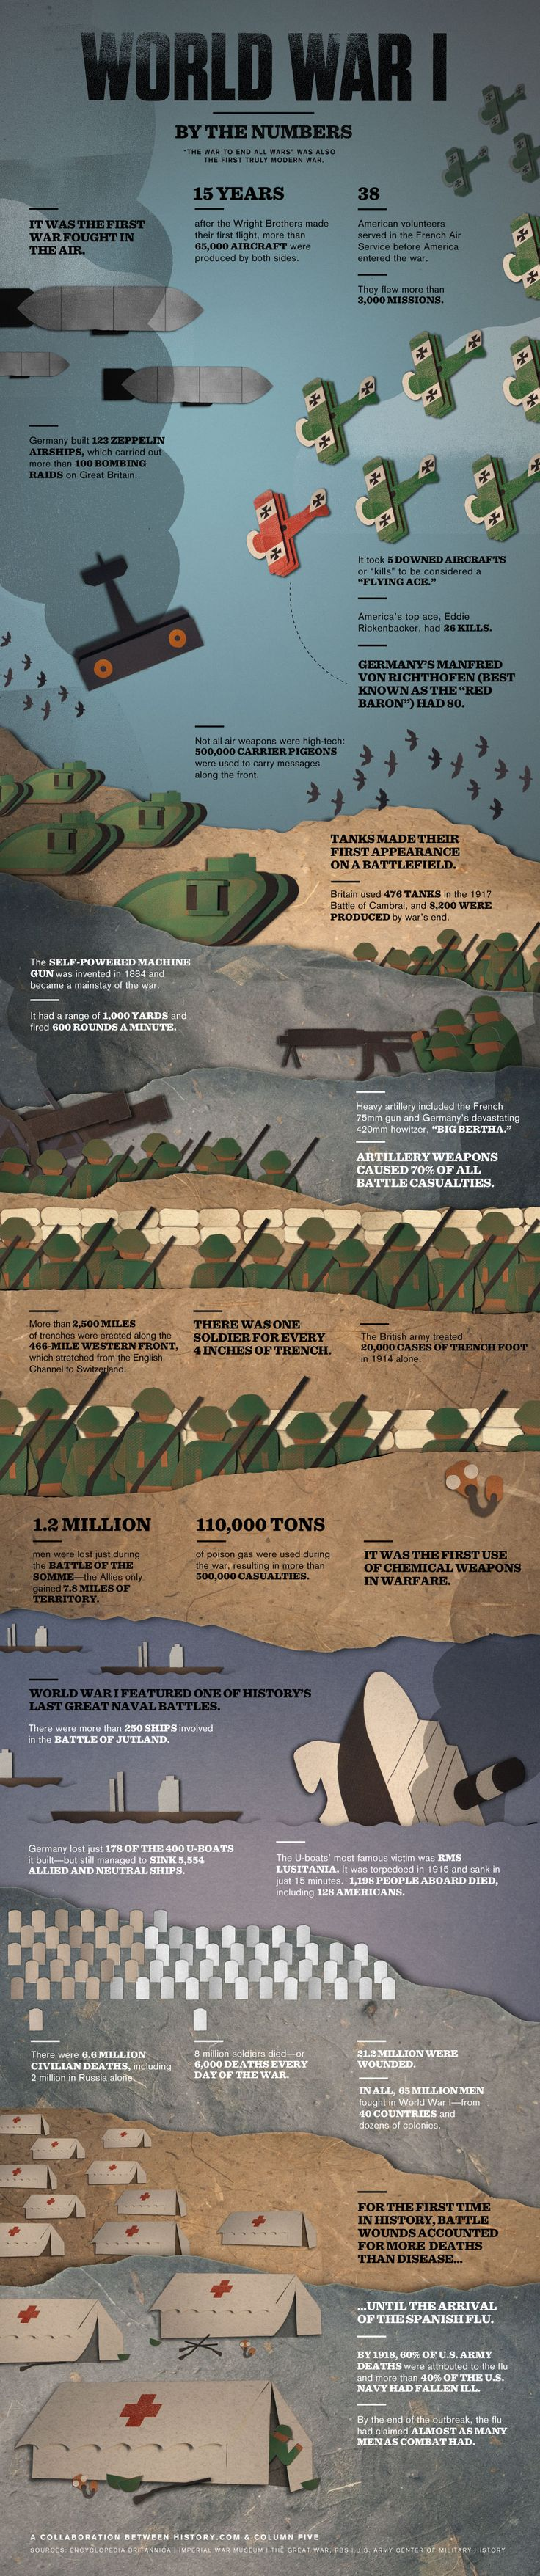 Can make most of these! (since I can't buy it!:( World War I by the Numbers - Infographic from the History Channel